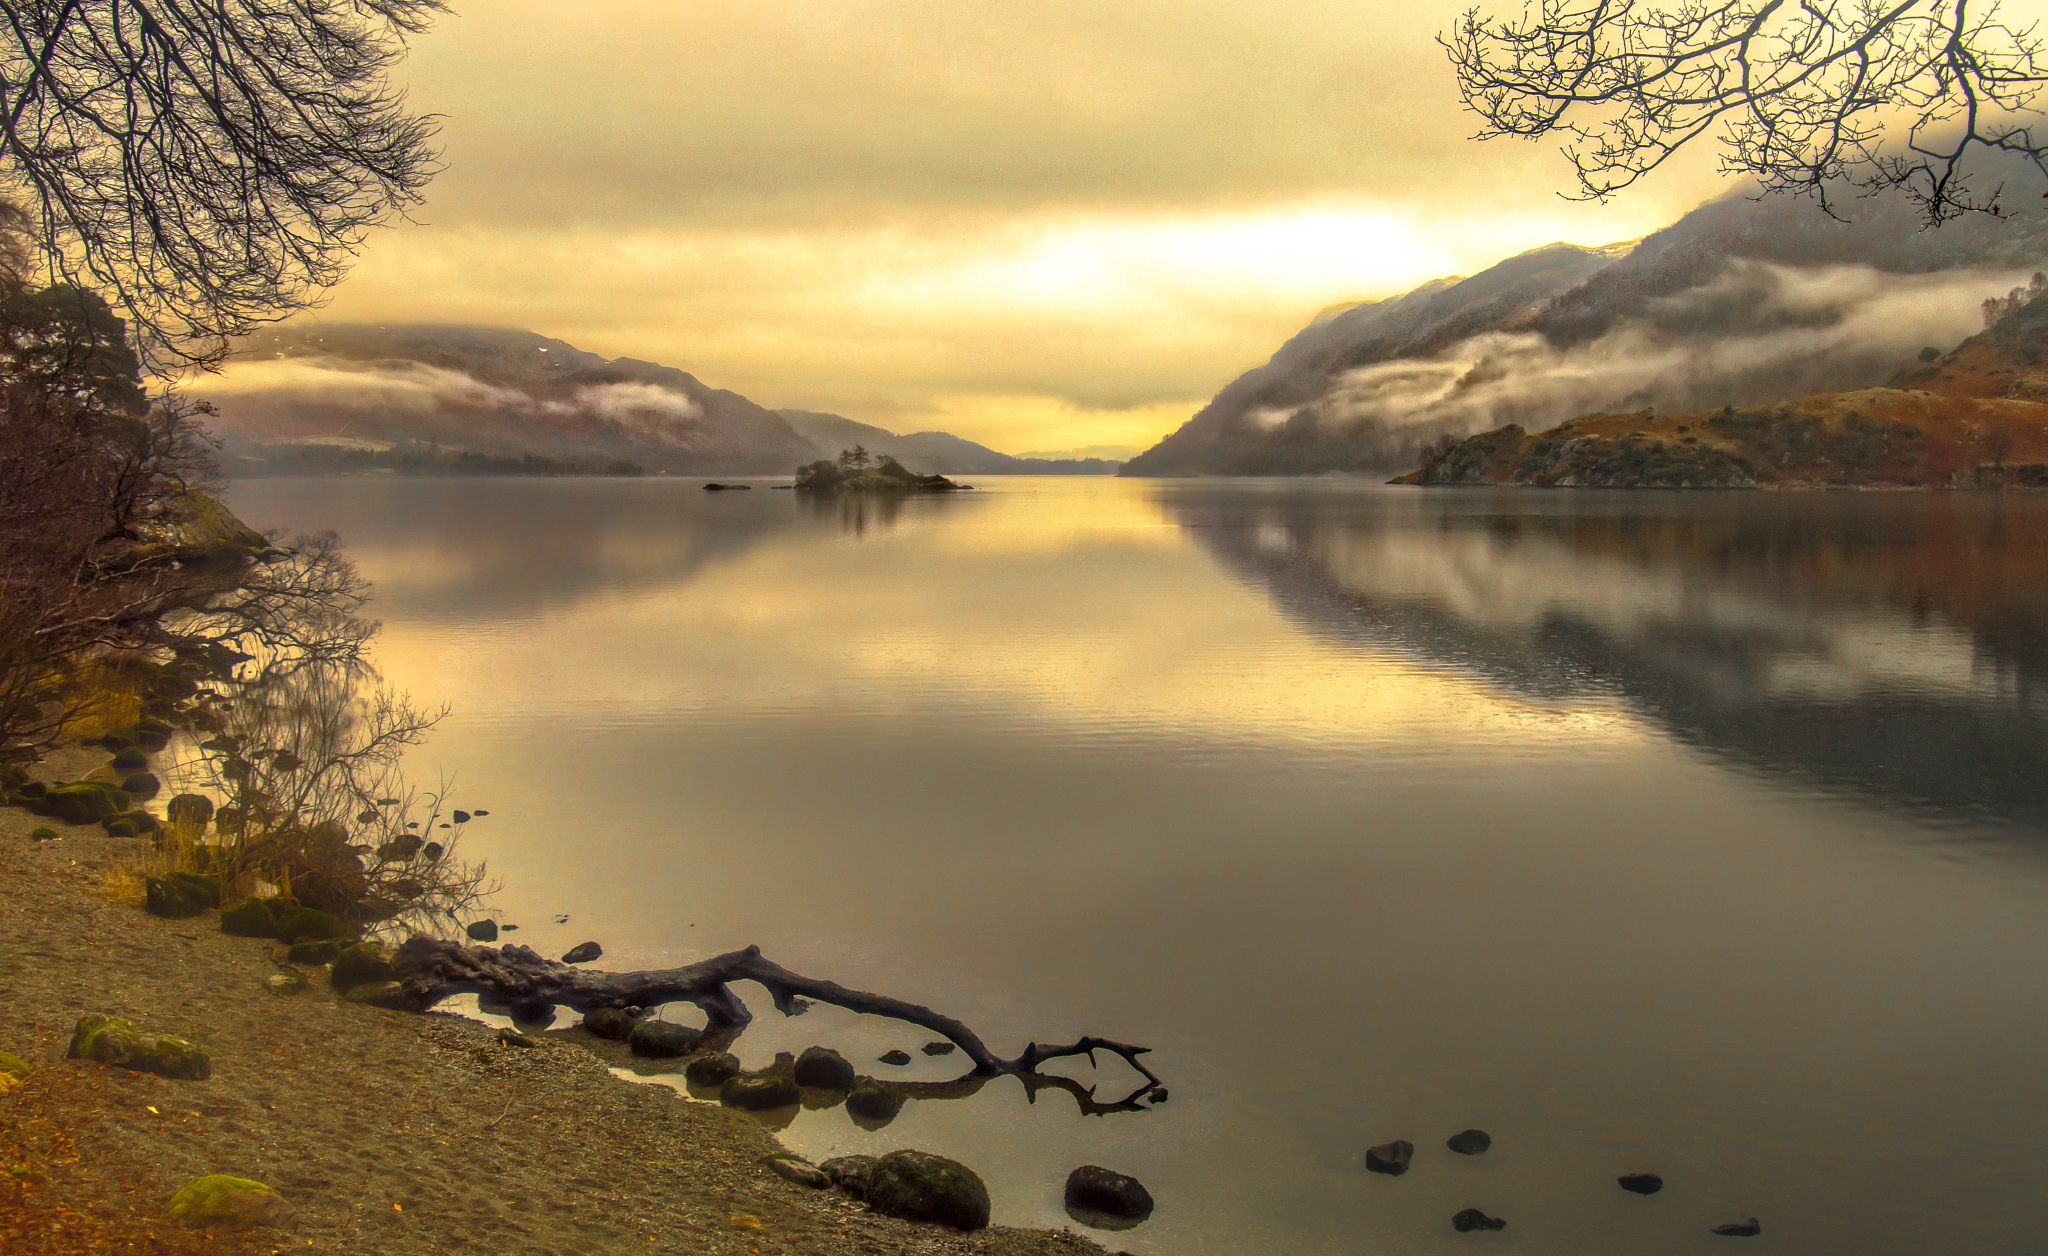 tranquility at Ullswater,Lake District Uk. by robin.howe.56